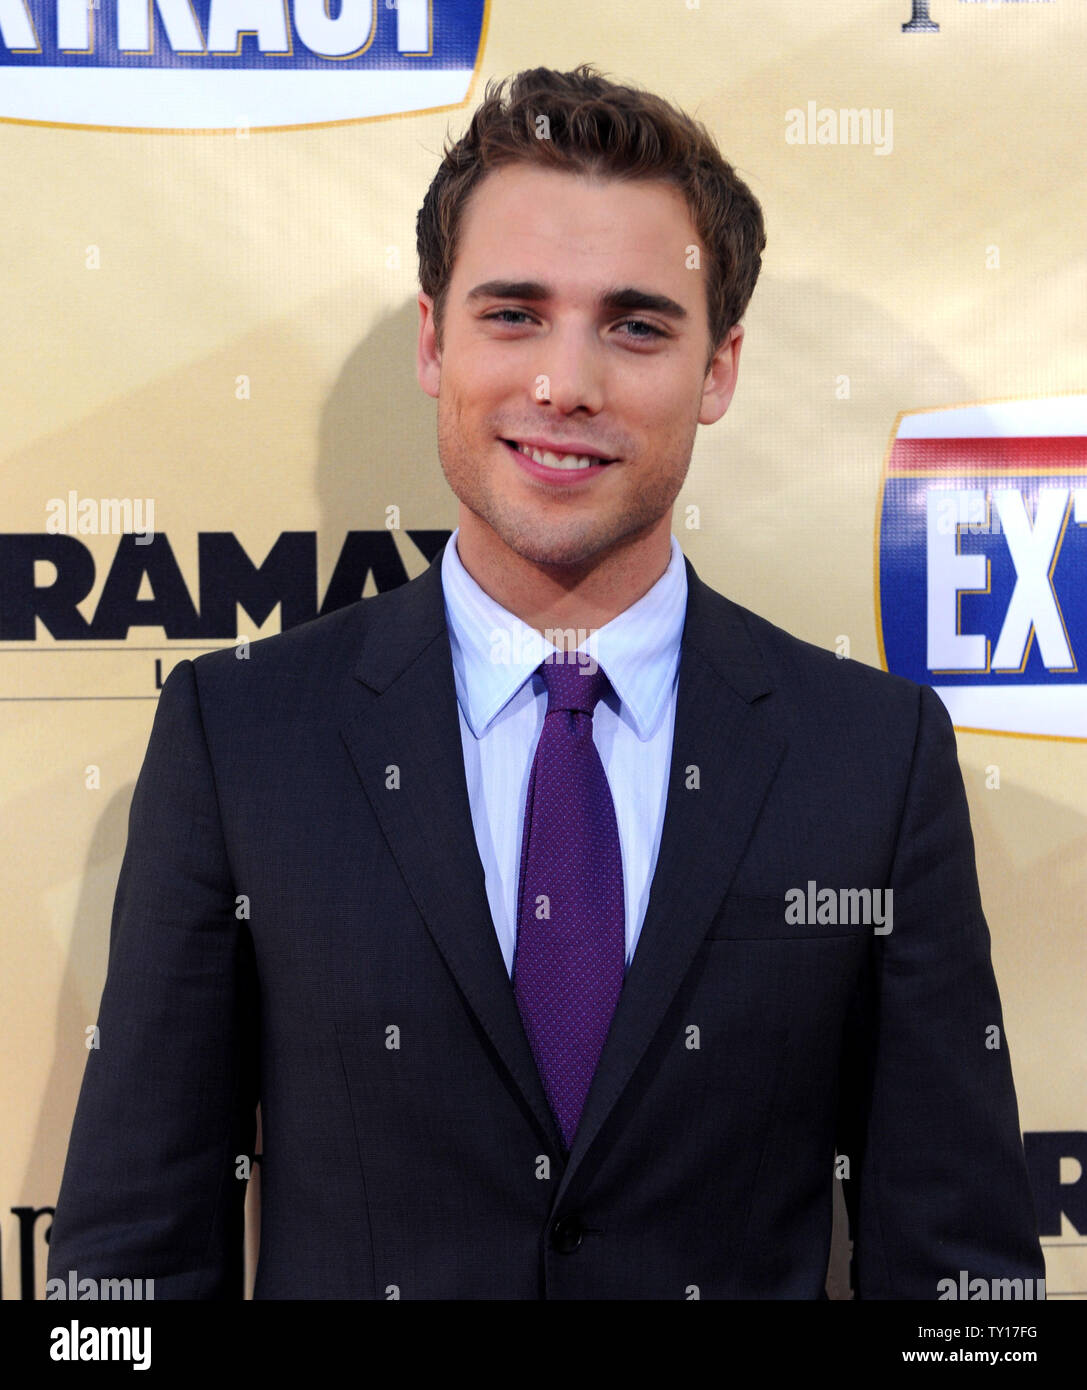 "Dustin Milligan, a cast member in the motion picture comedy ""Extract"", attends the premiere of the film at the Arclight Cinerama Dome in Los Angeles on August 24, 2009.    UPI/Jim Ruymen Stock Photo"